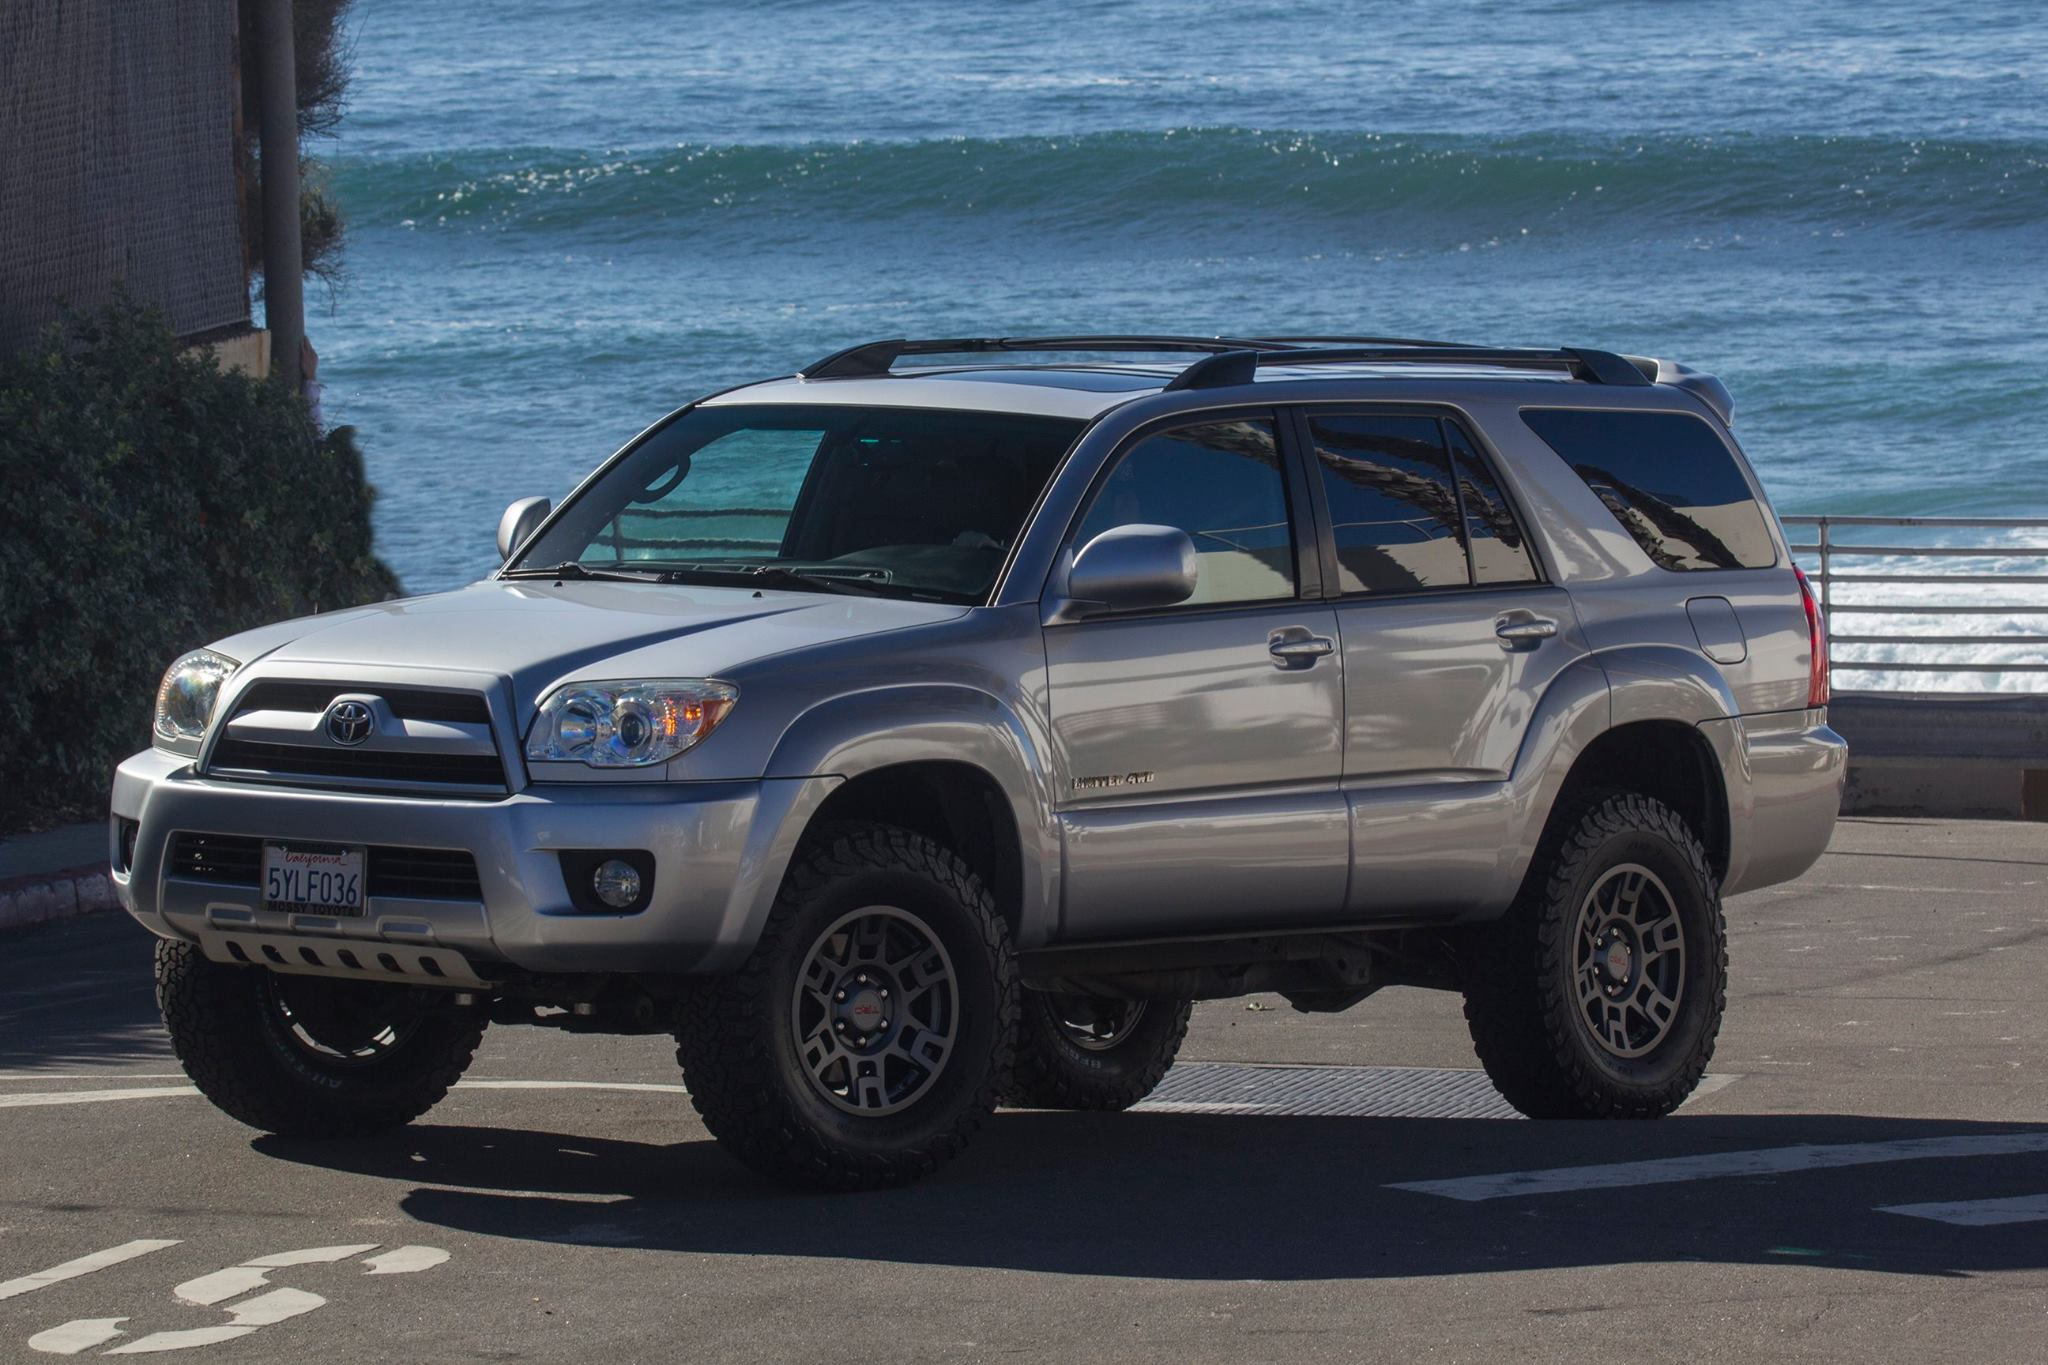 07 4Runner: Joining the ranks